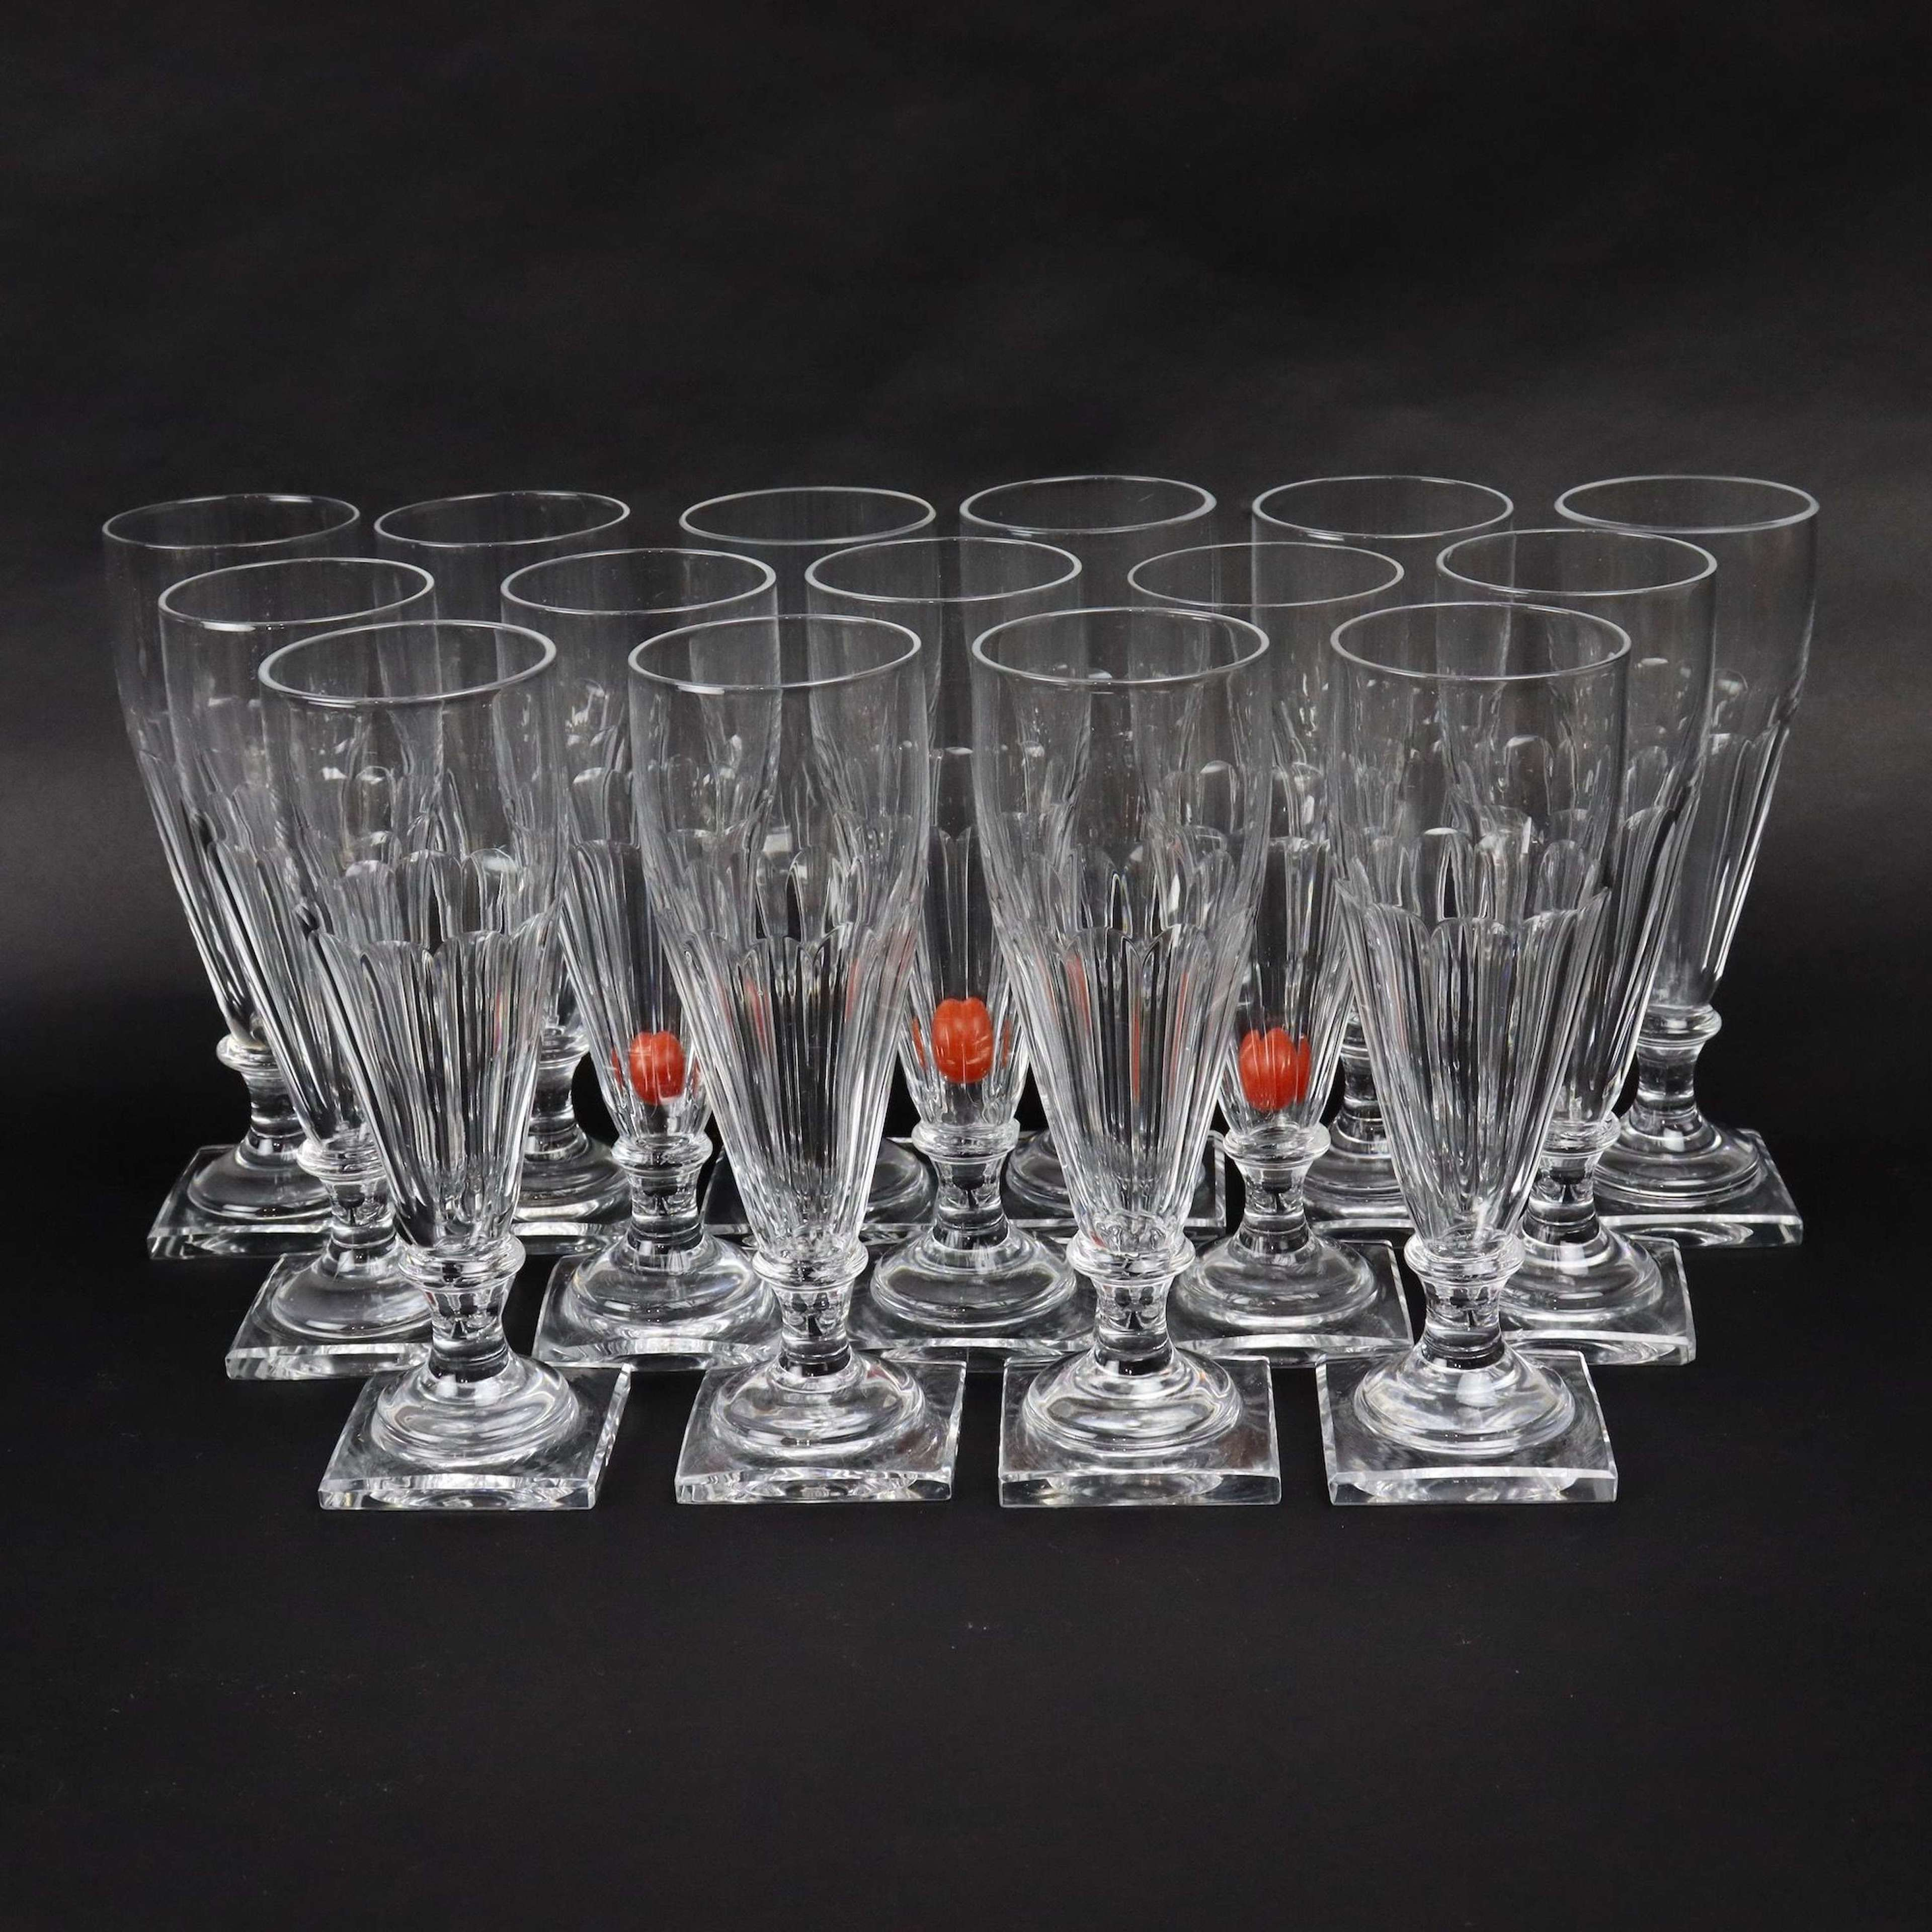 Baccarat crystal champagne coupes